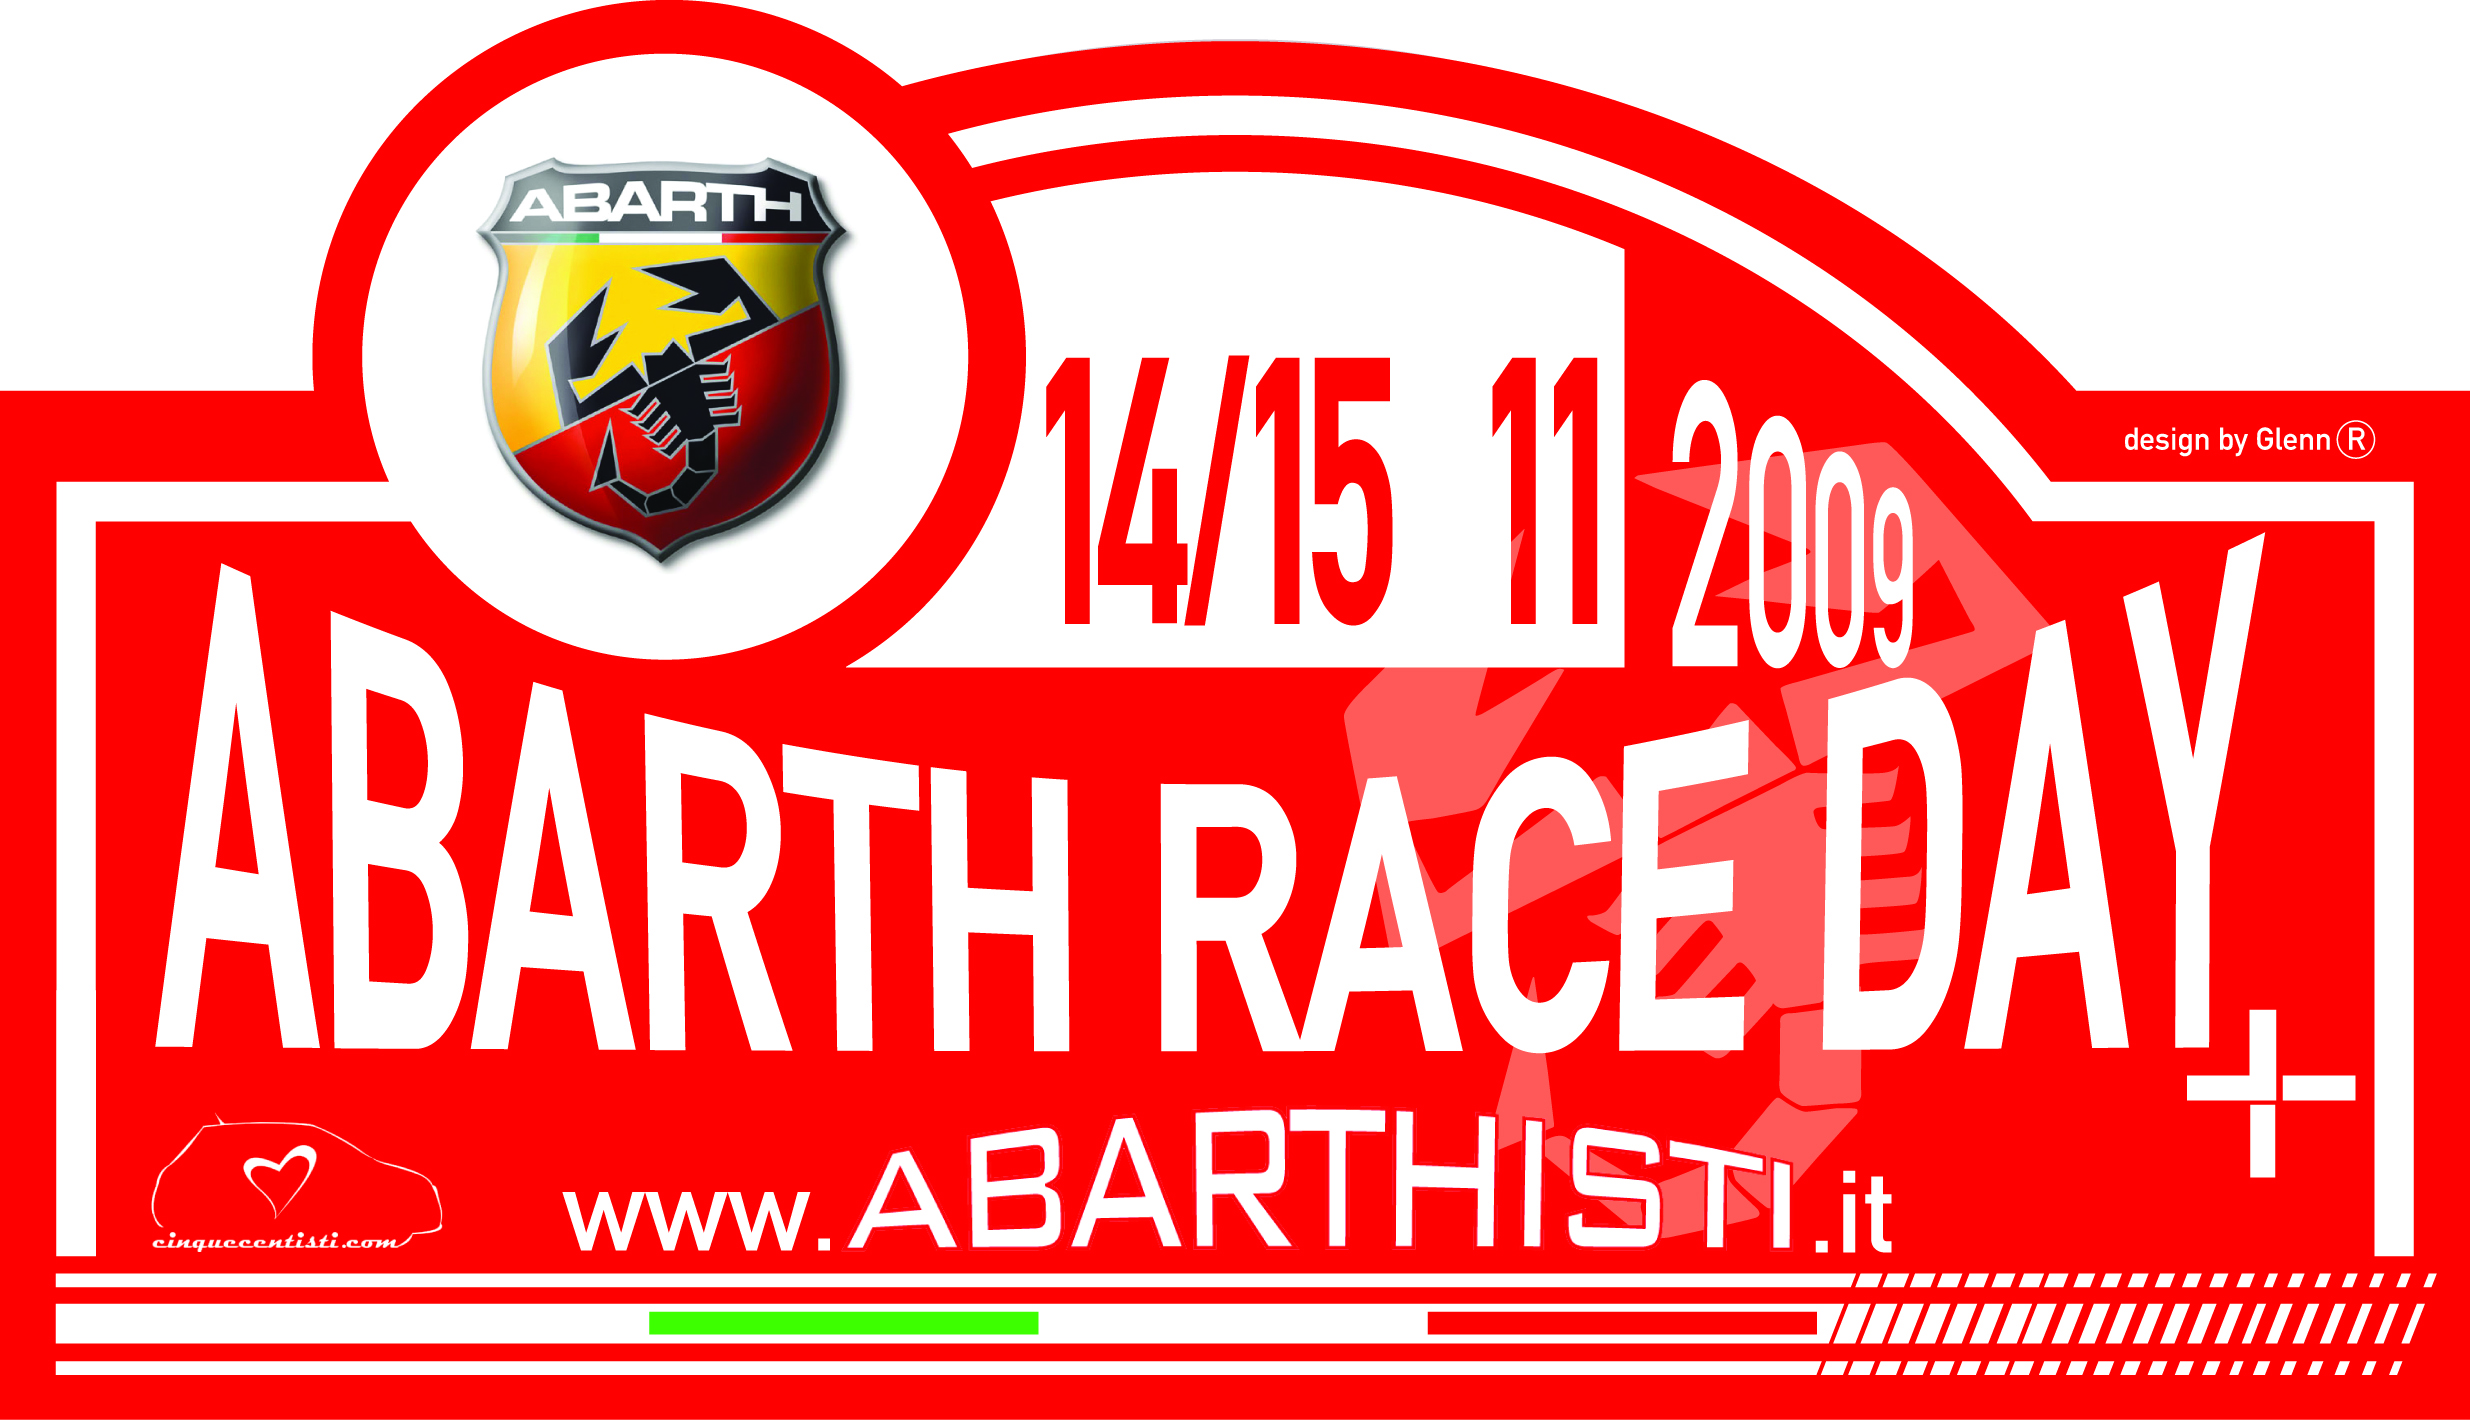 abarth race day